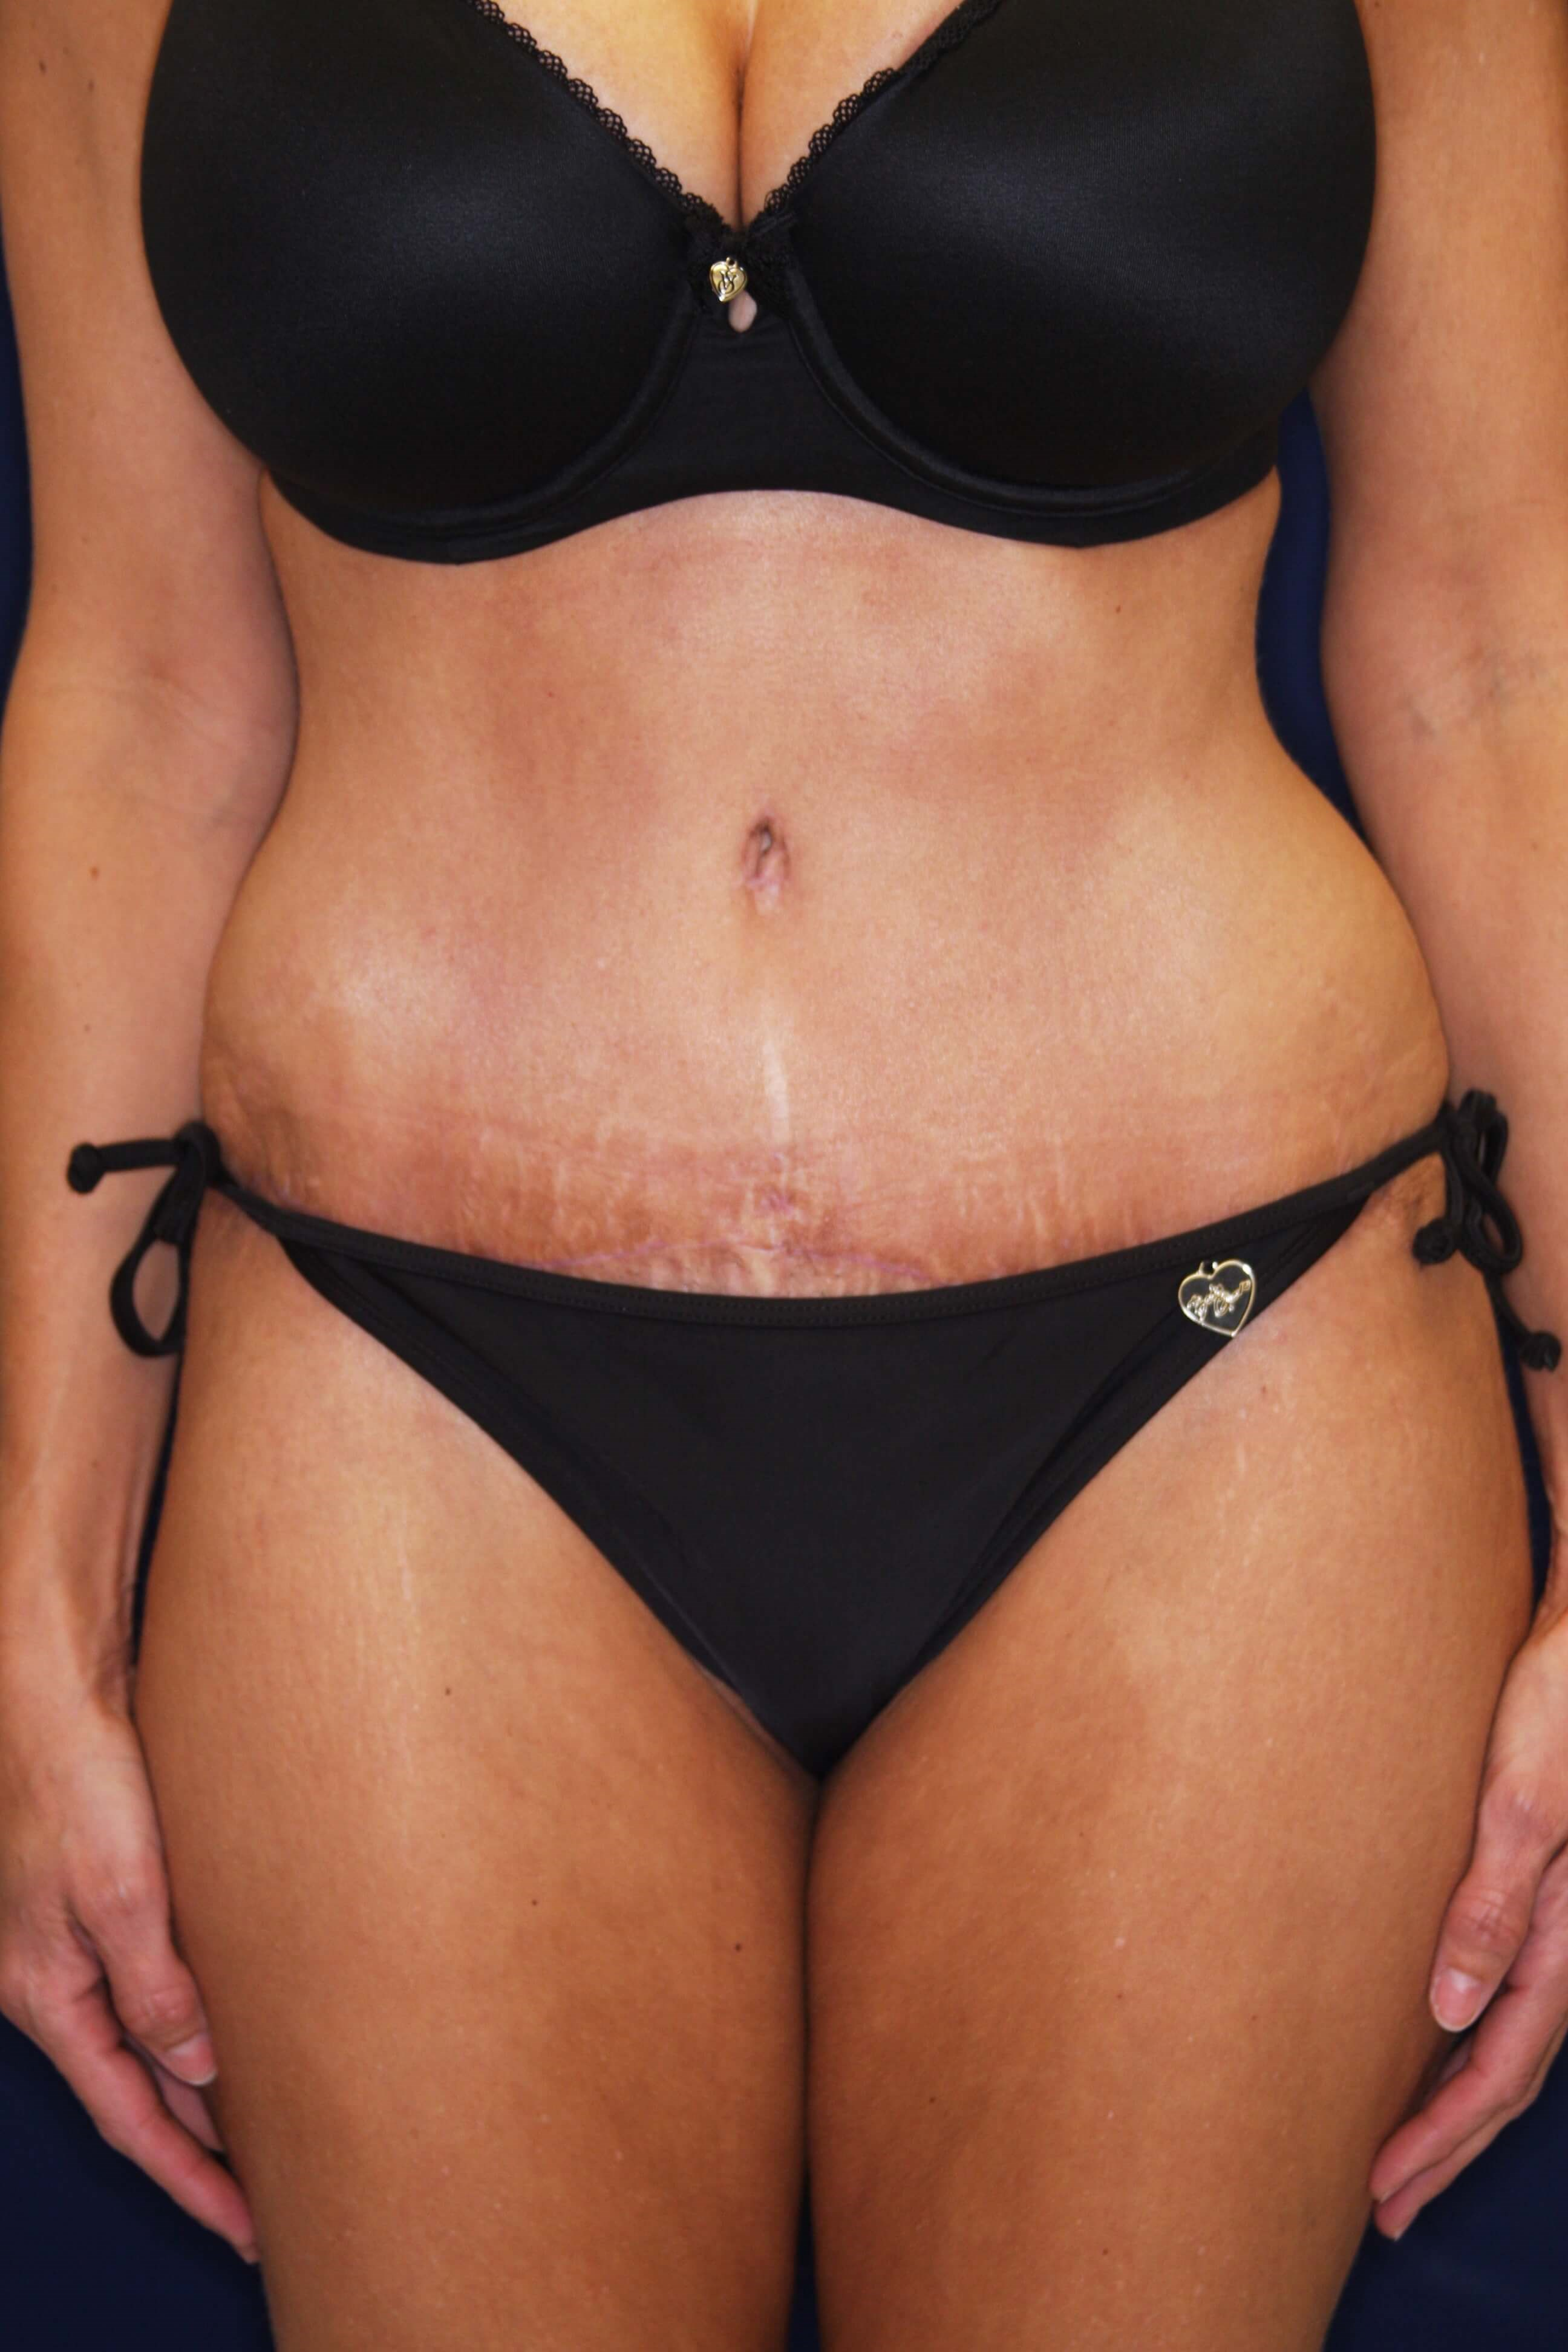 Tummy Tuck, Downers Grove, IL 1 year postop